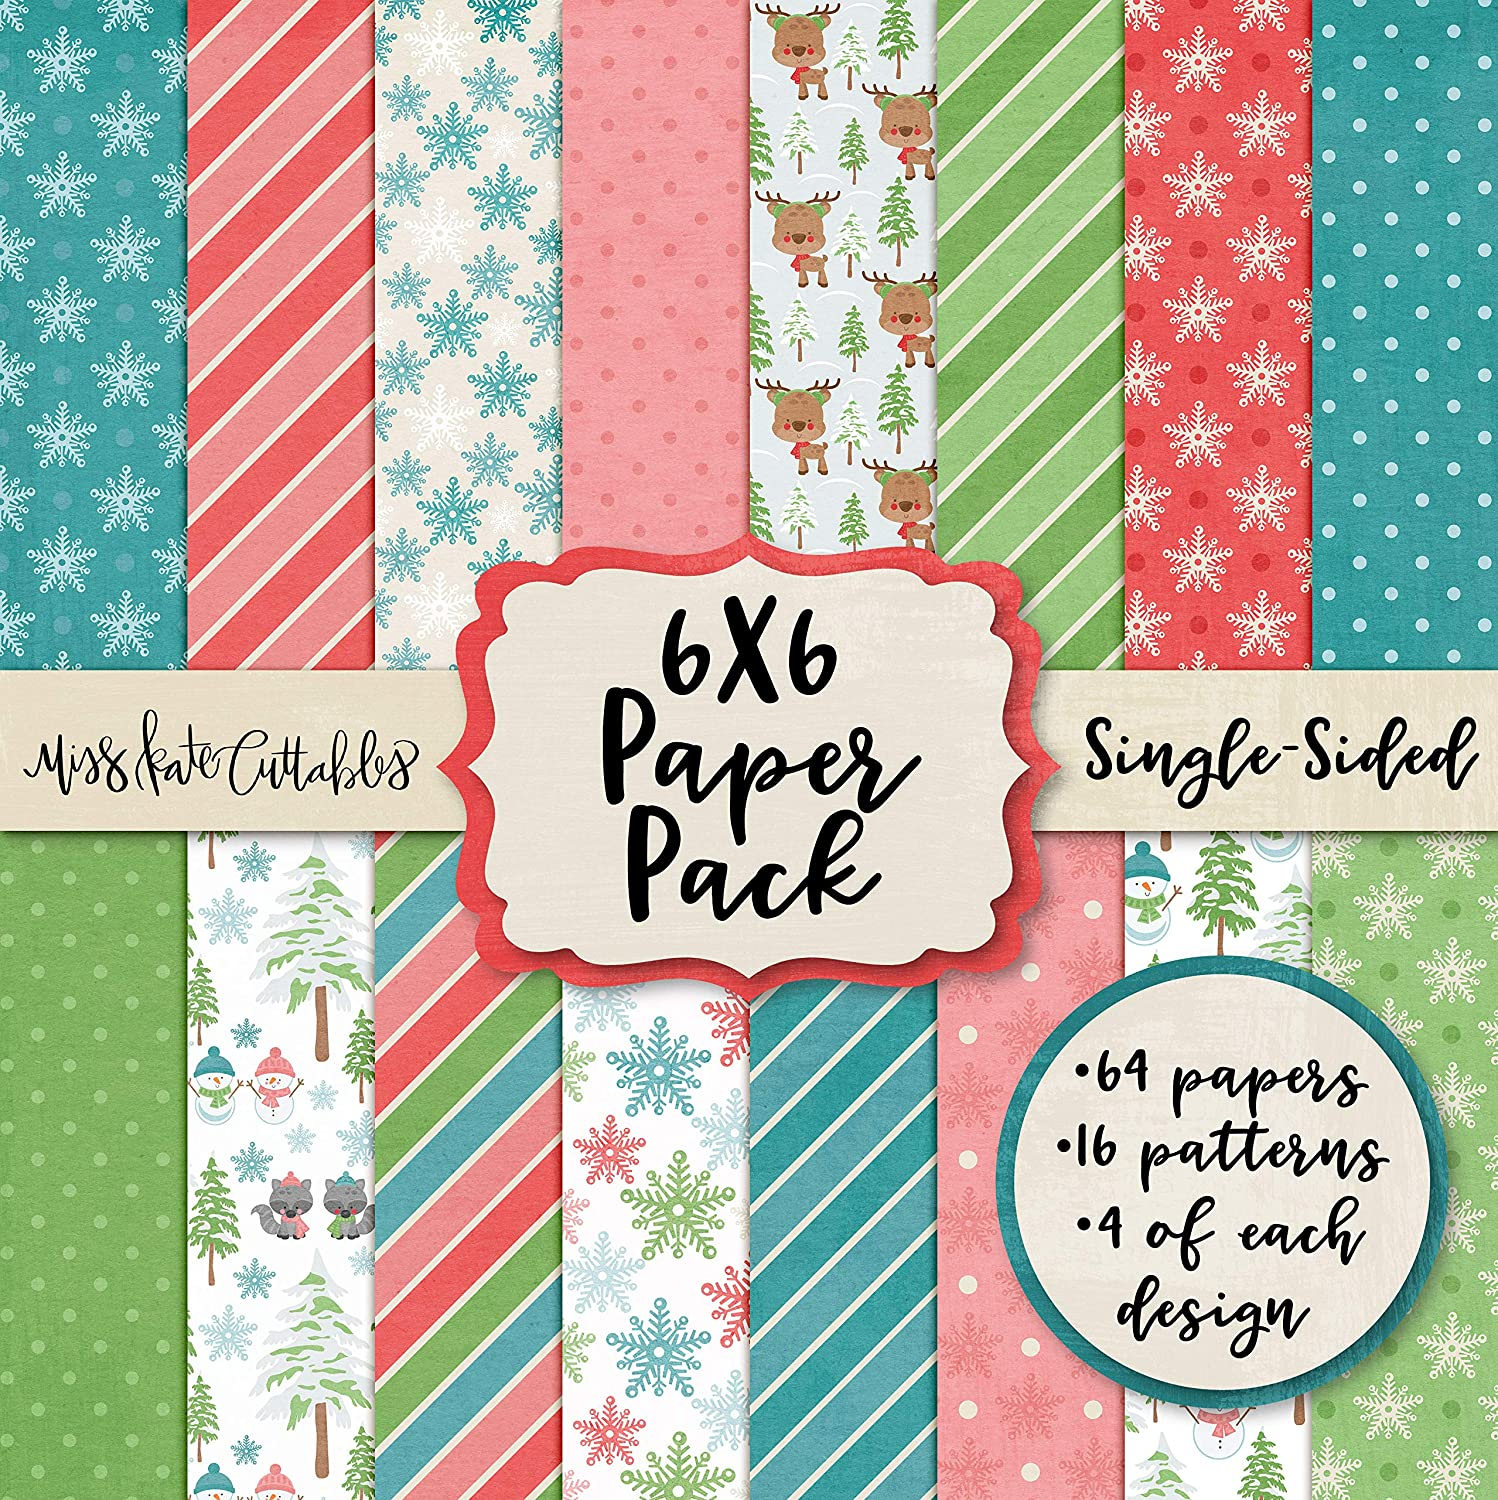 6X6 Pattern Paper Pack by Miss Kate Cuttables Card Making Scrapbook Specialty Paper Single-Sided 6x6 Collection Includes 64 Sheets Tis The Season